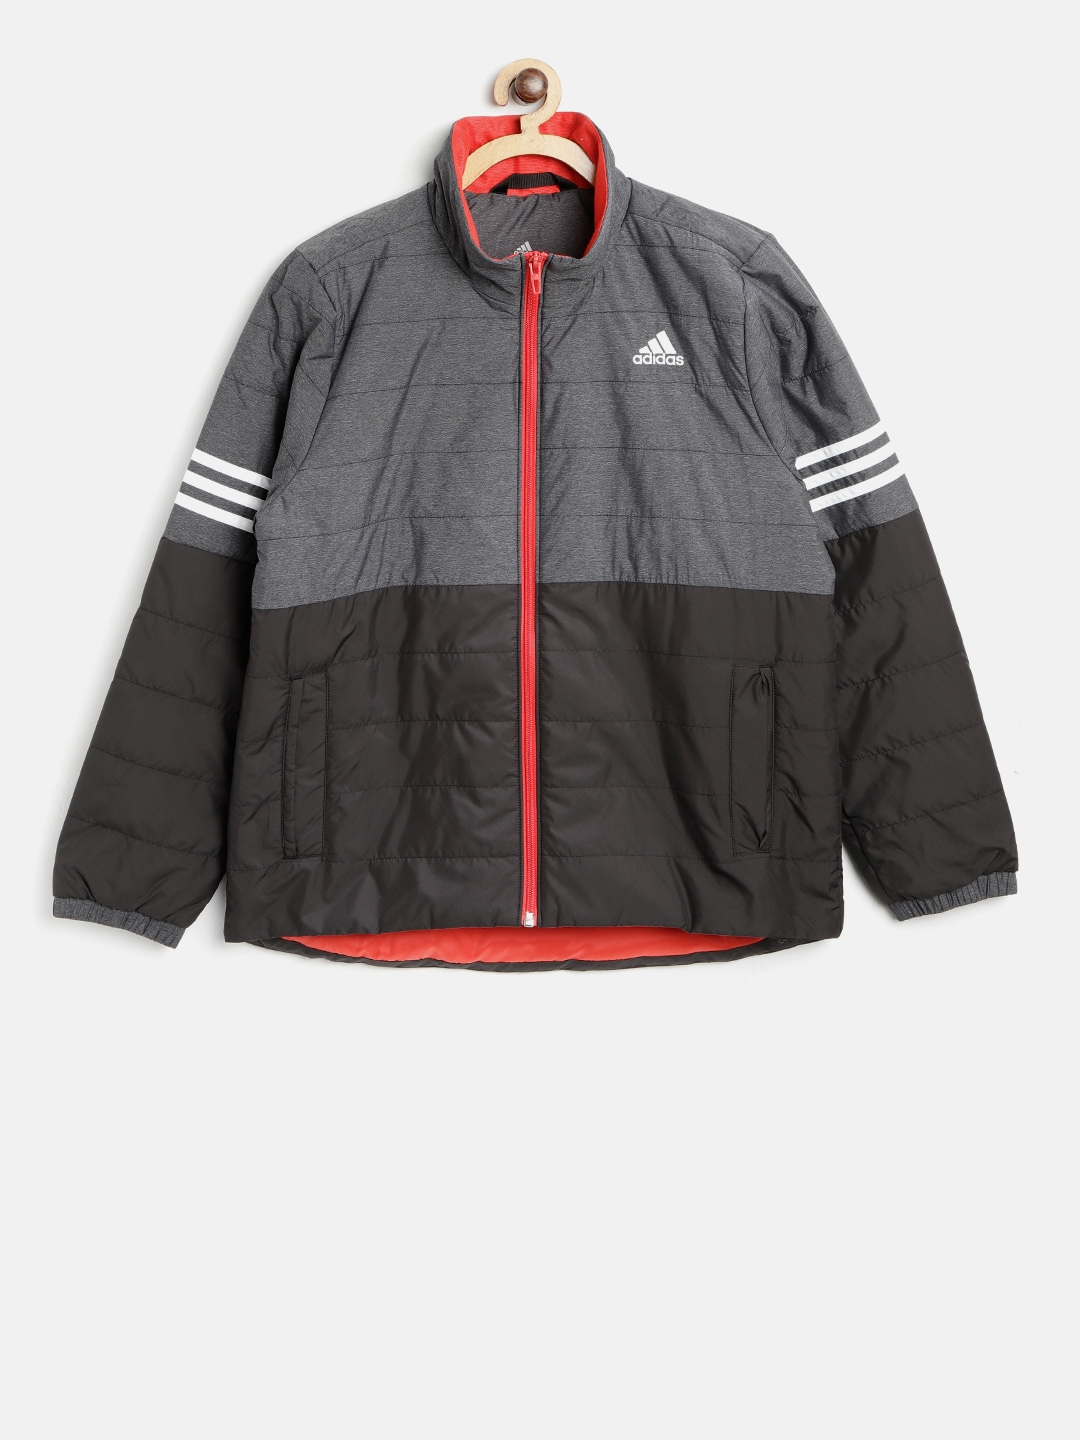 a204d0f387cf Adidas Jacket Tracksuits Sweaters - Buy Adidas Jacket Tracksuits Sweaters  online in India